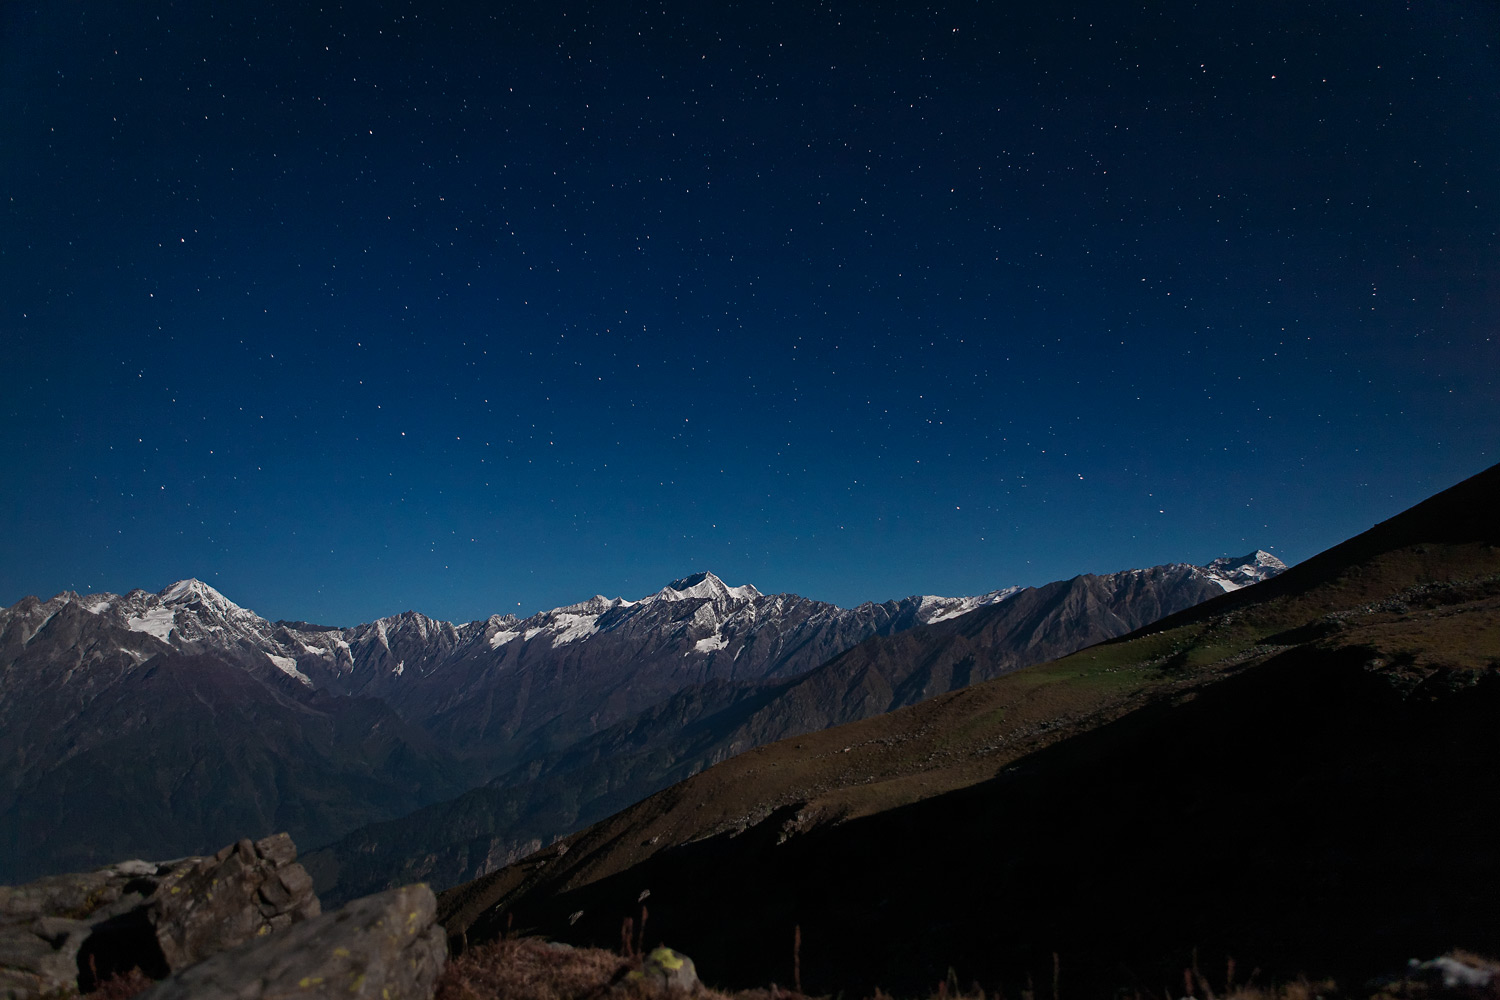 Full-moonlit night, near Brighu lake, Himachal, India